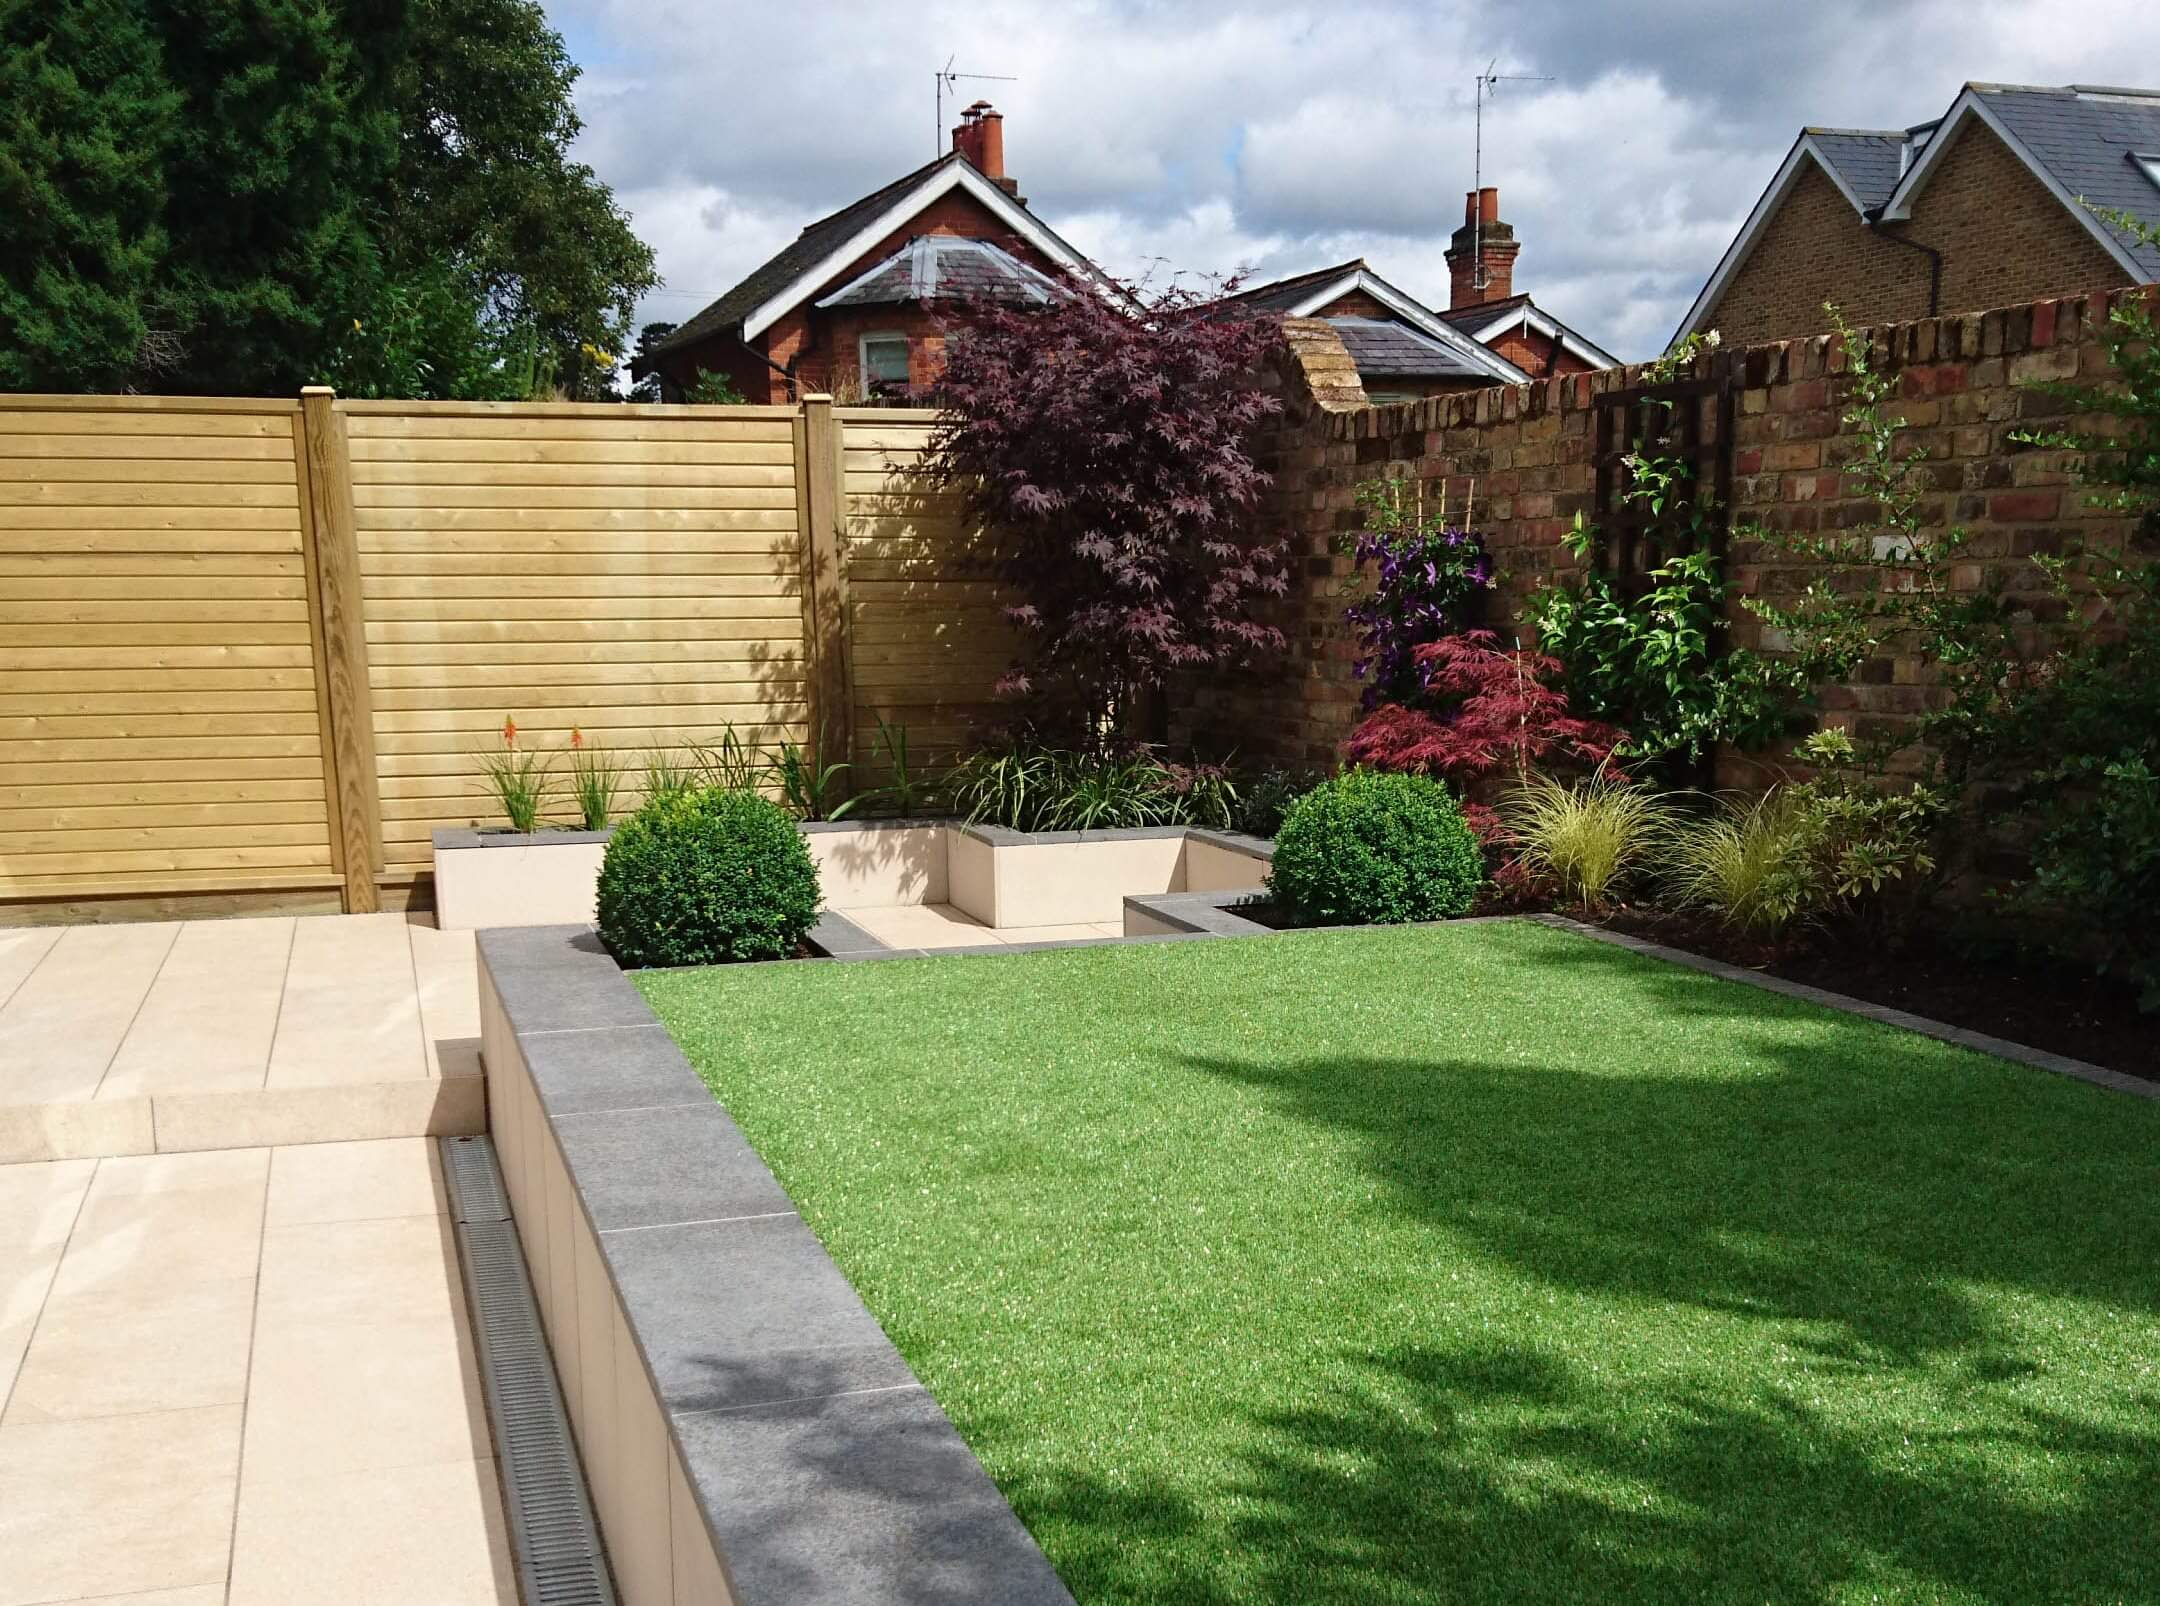 Tongue and groove fence panels with horizontal boards